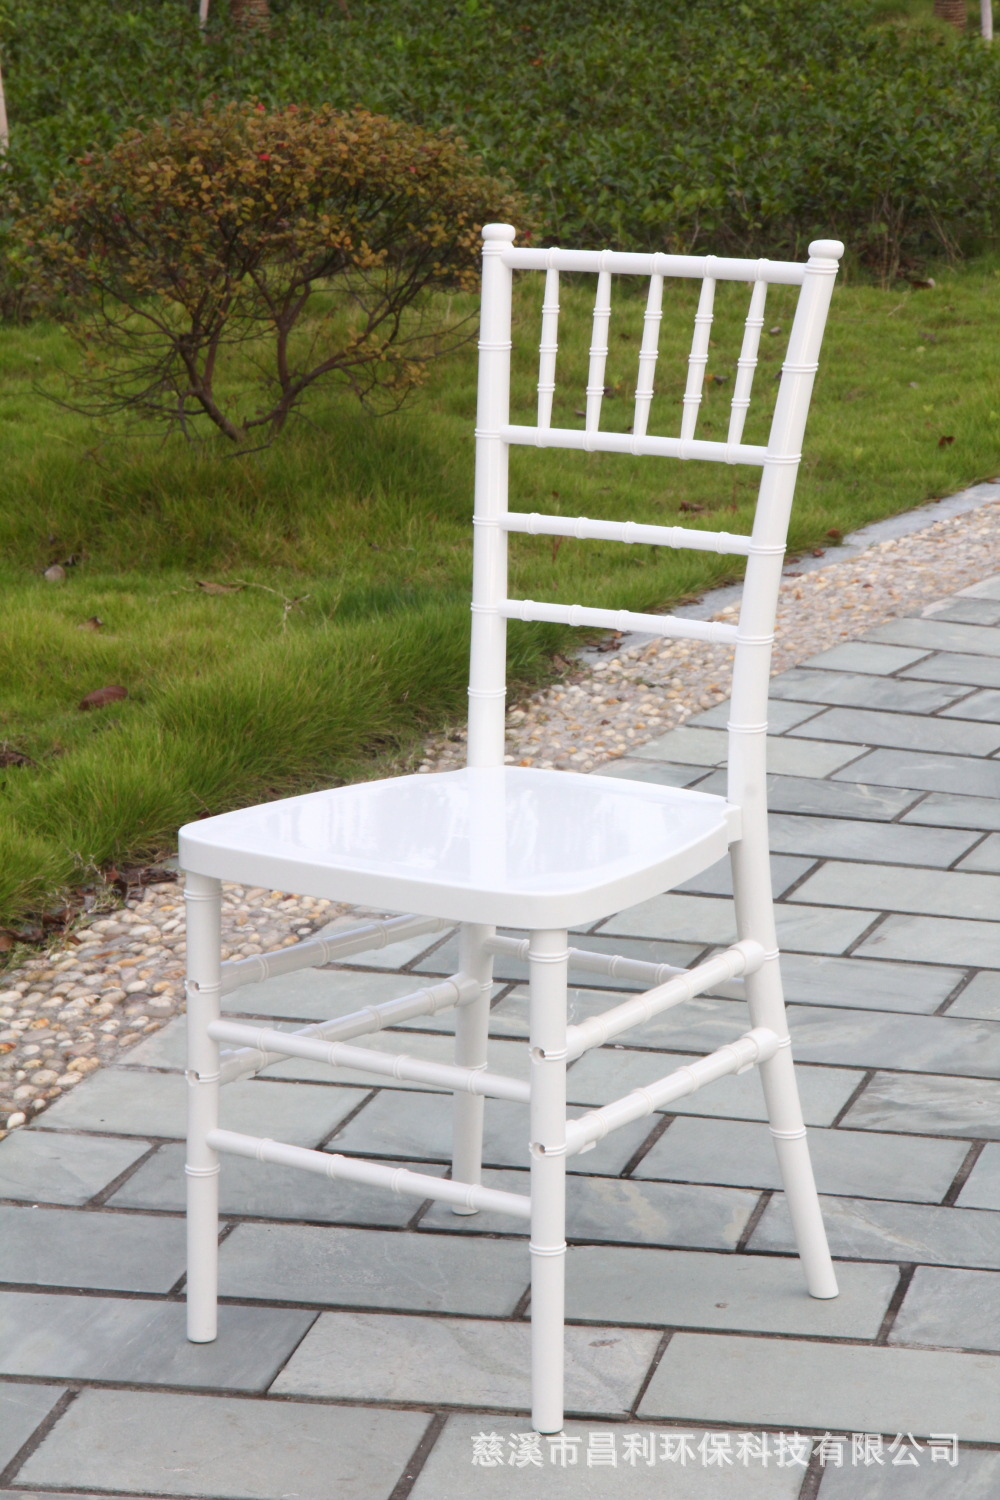 Factory Wholesale Bamboo Chairs Outdoor Wedding White Bamboo Chairs Tiffany C